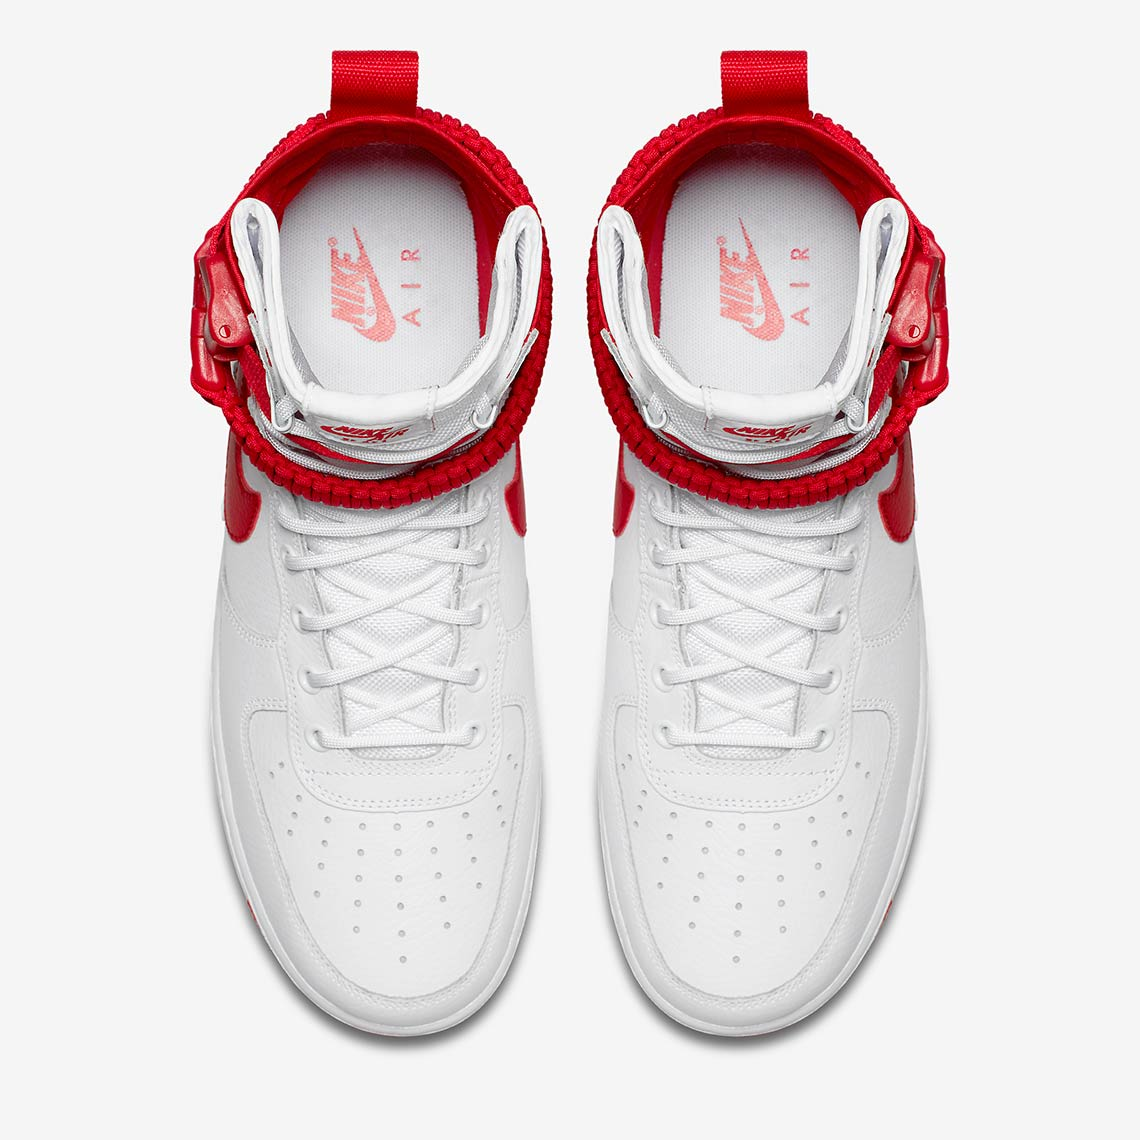 d0acb0719670 Nike SF-AF1 High AVAILABLE AT Nike  180. Color  White University Red University  Red